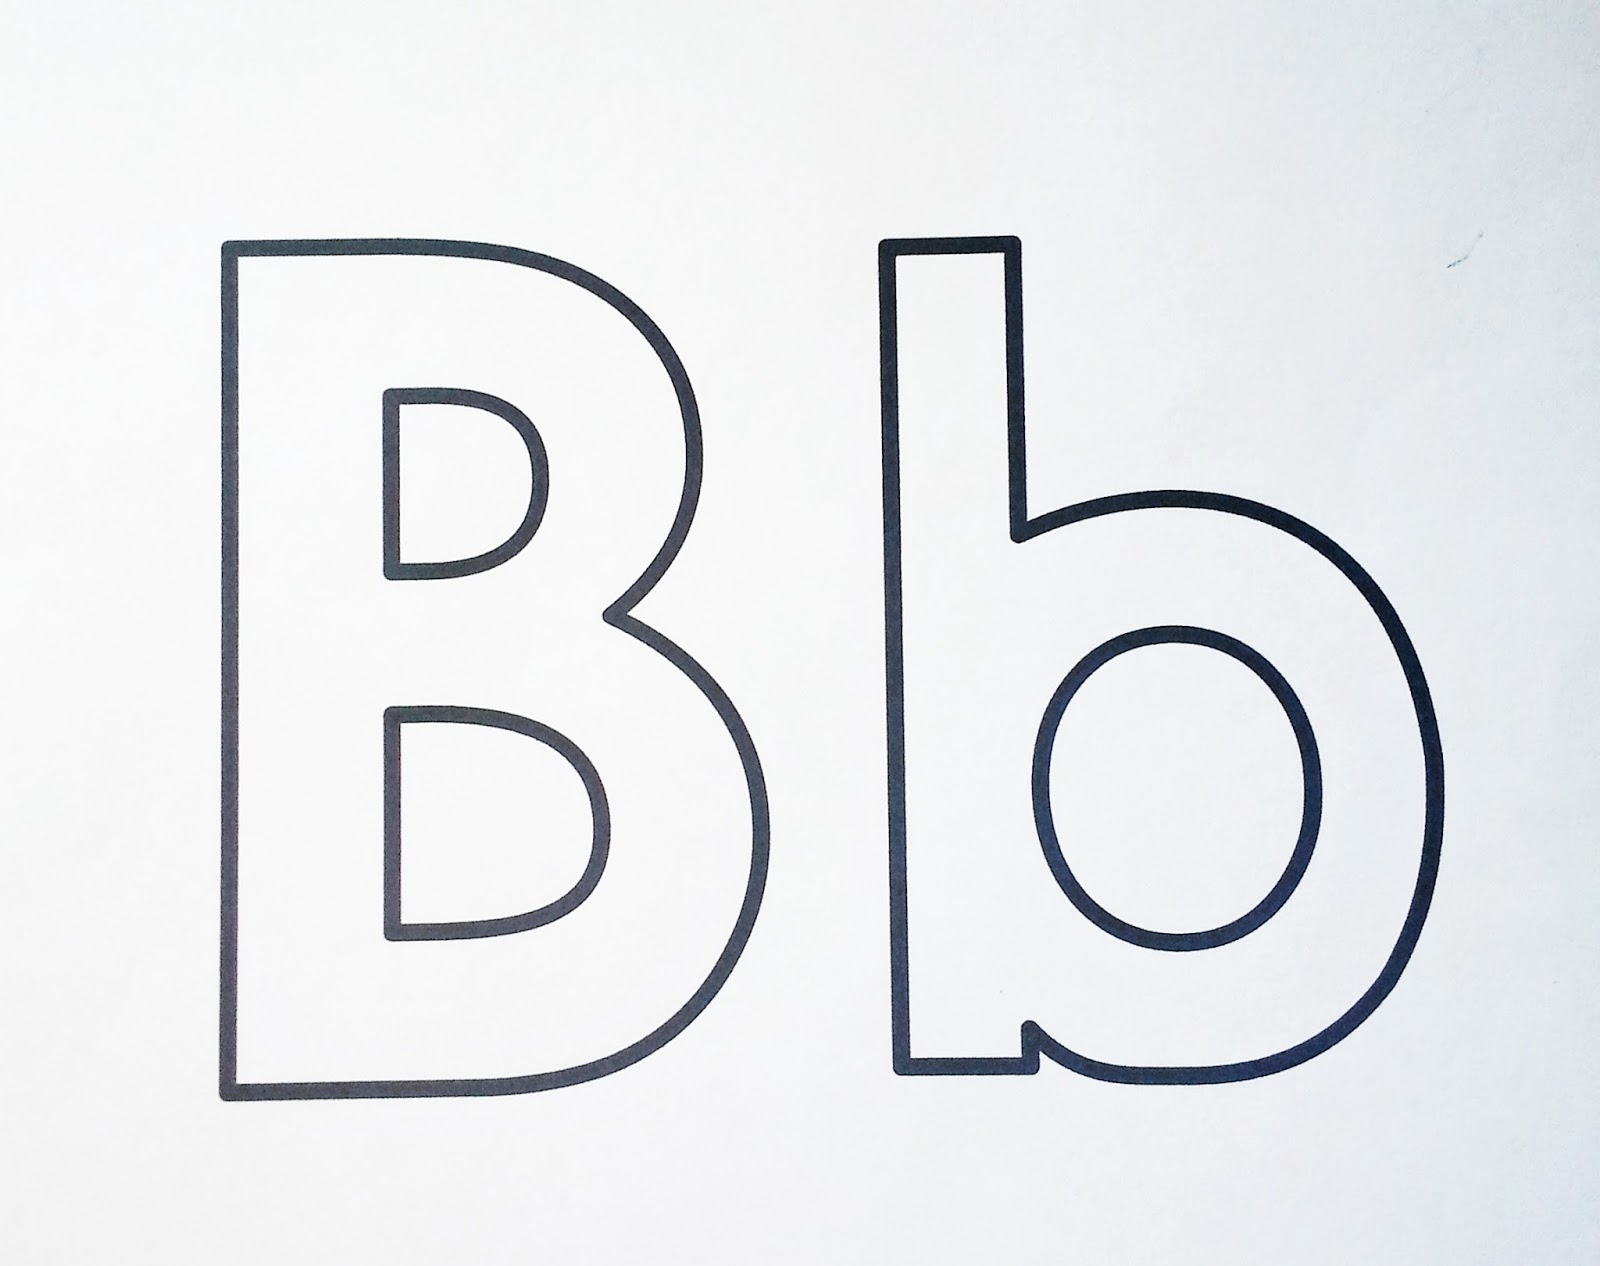 the letter b